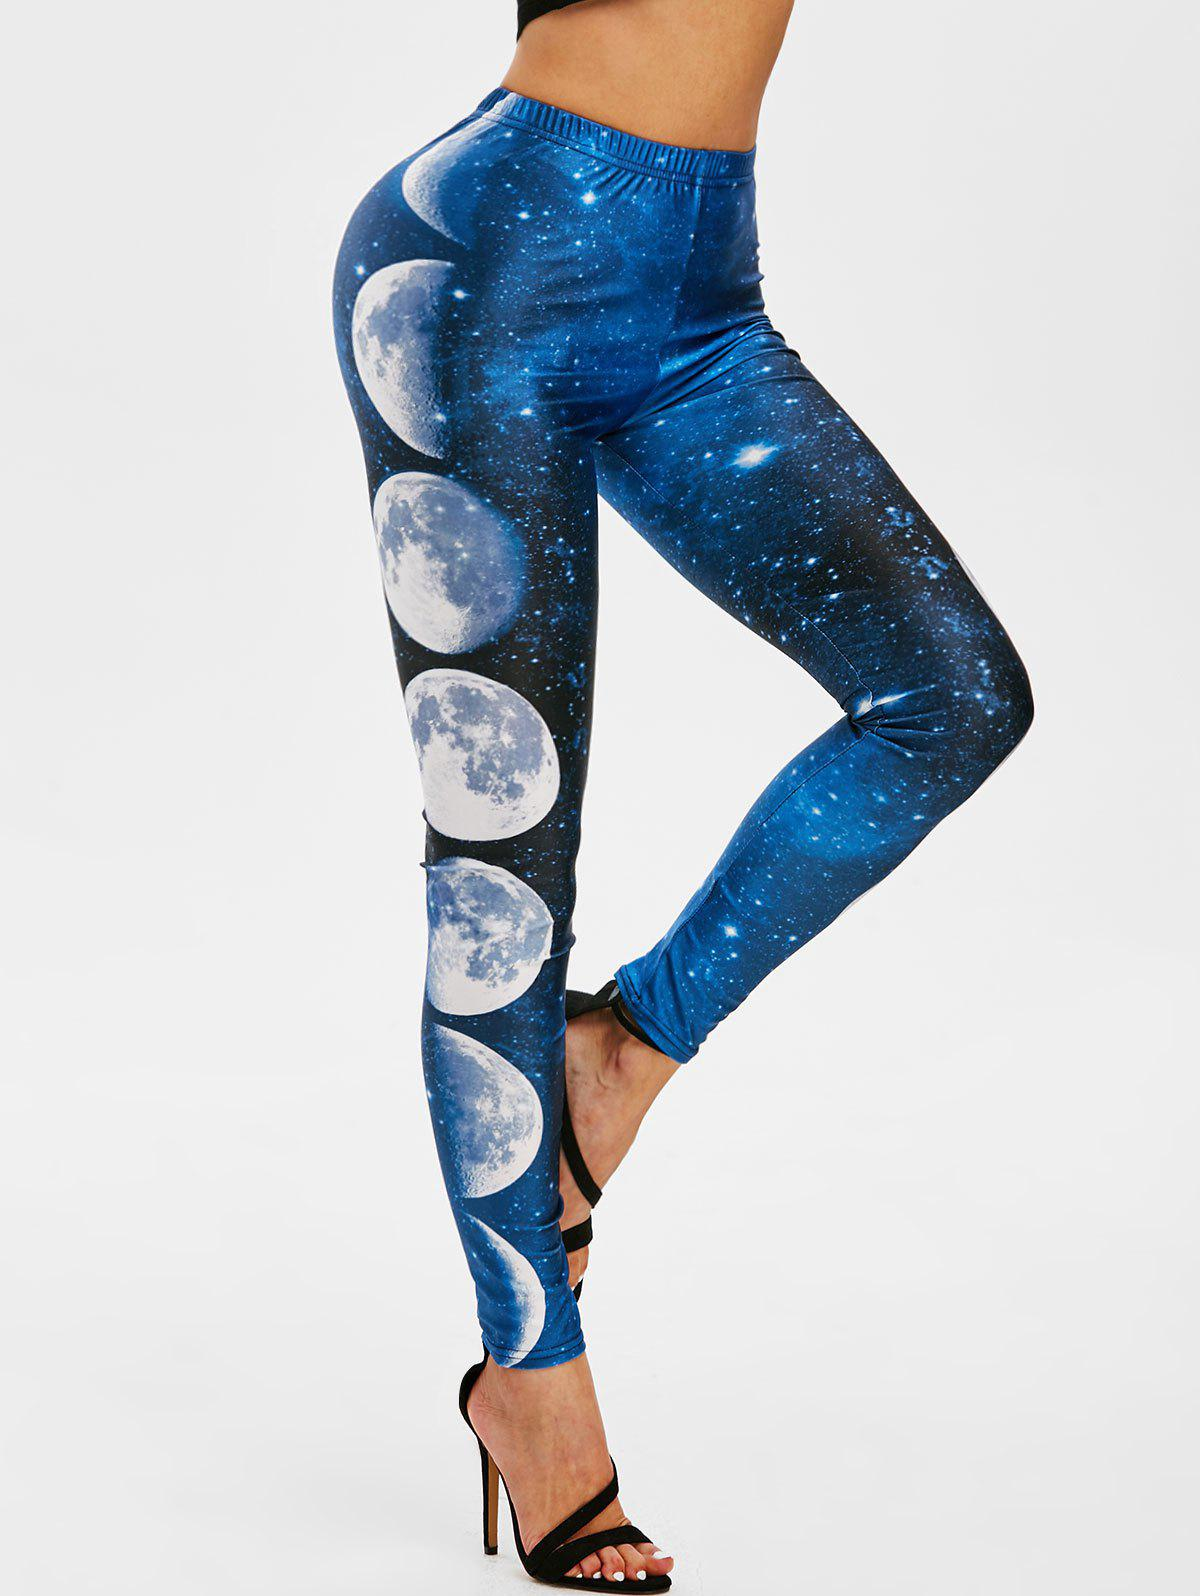 Lunar Eclipse Galaxy High Waisted Leggings - multicolor XL